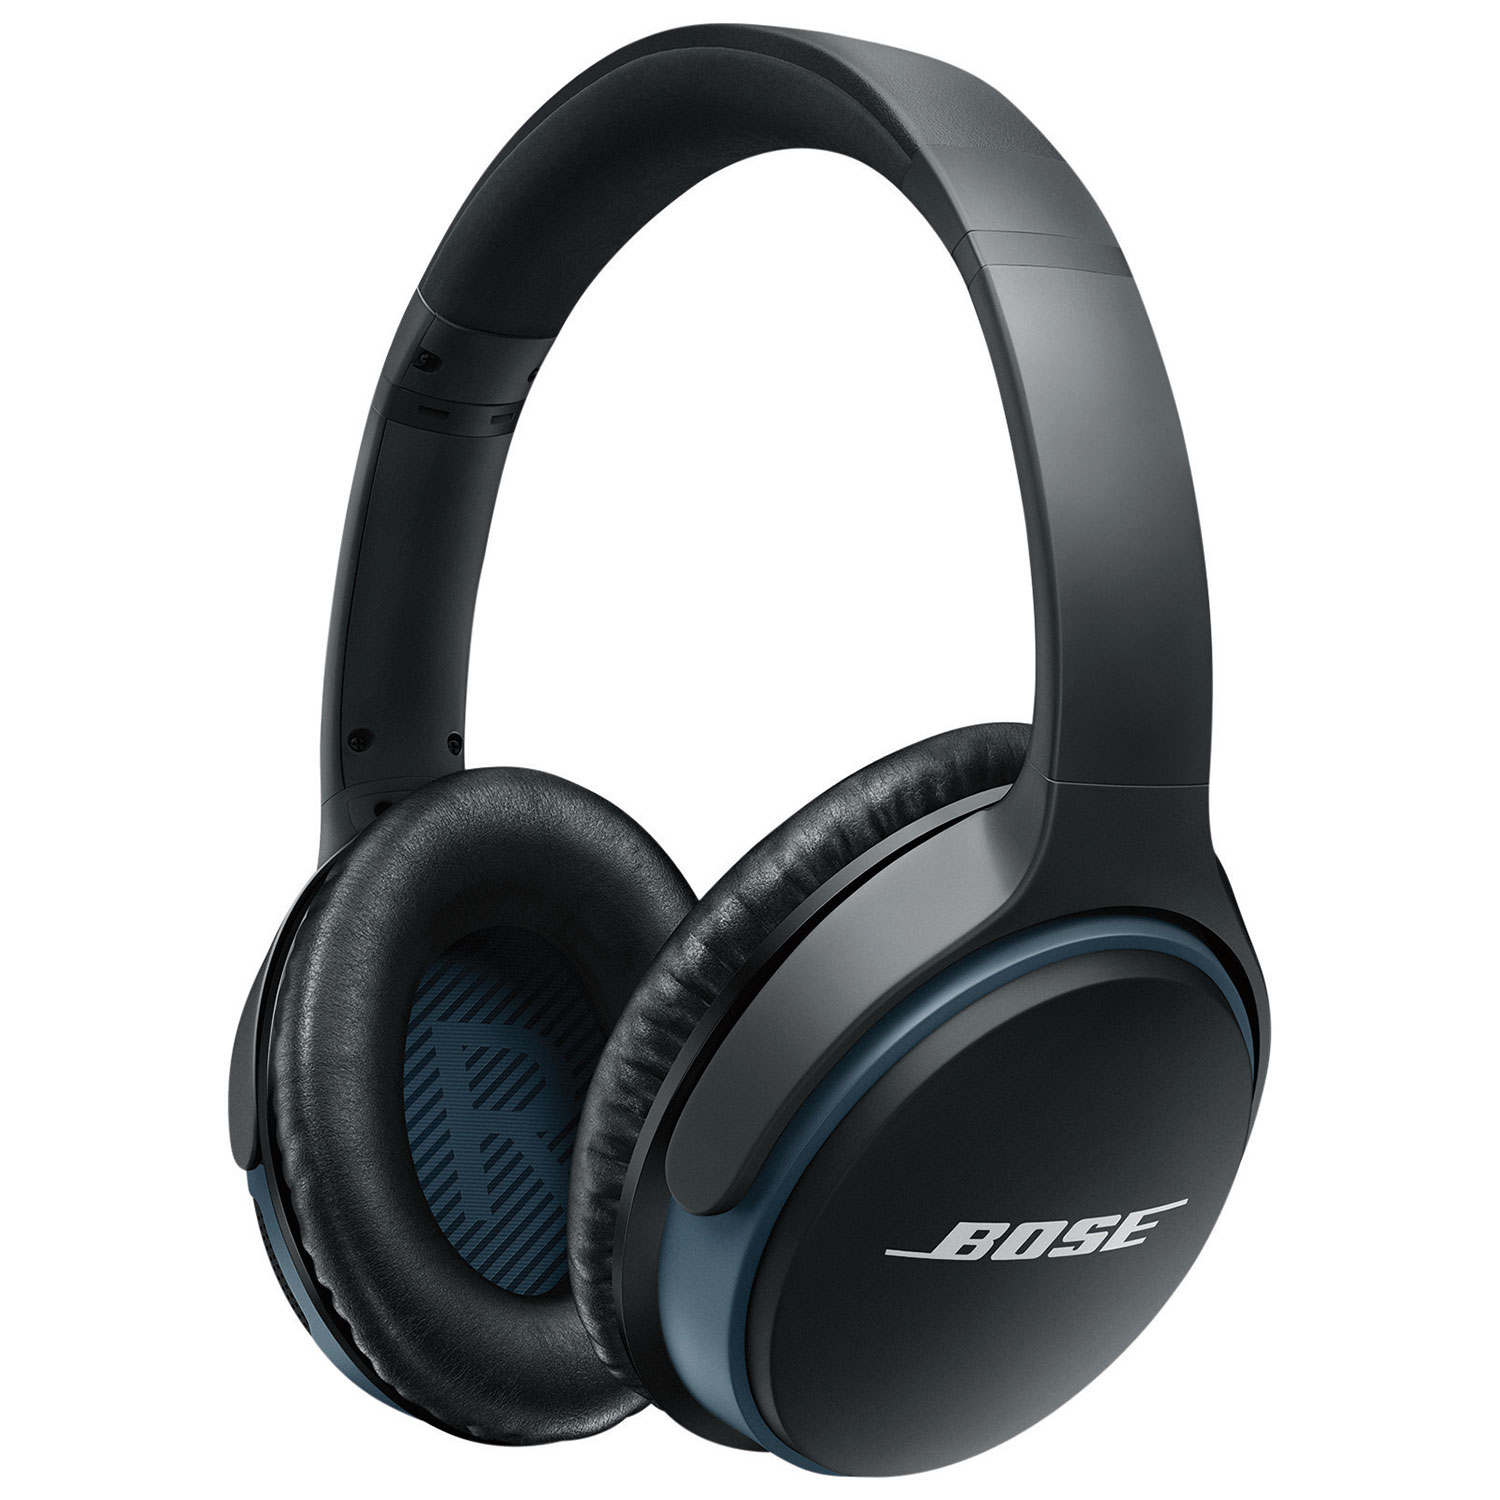 bose gaming headset. Bose SoundLink II Over-Ear Wireless Headphones With Mic - Black : Best Buy Canada Gaming Headset H